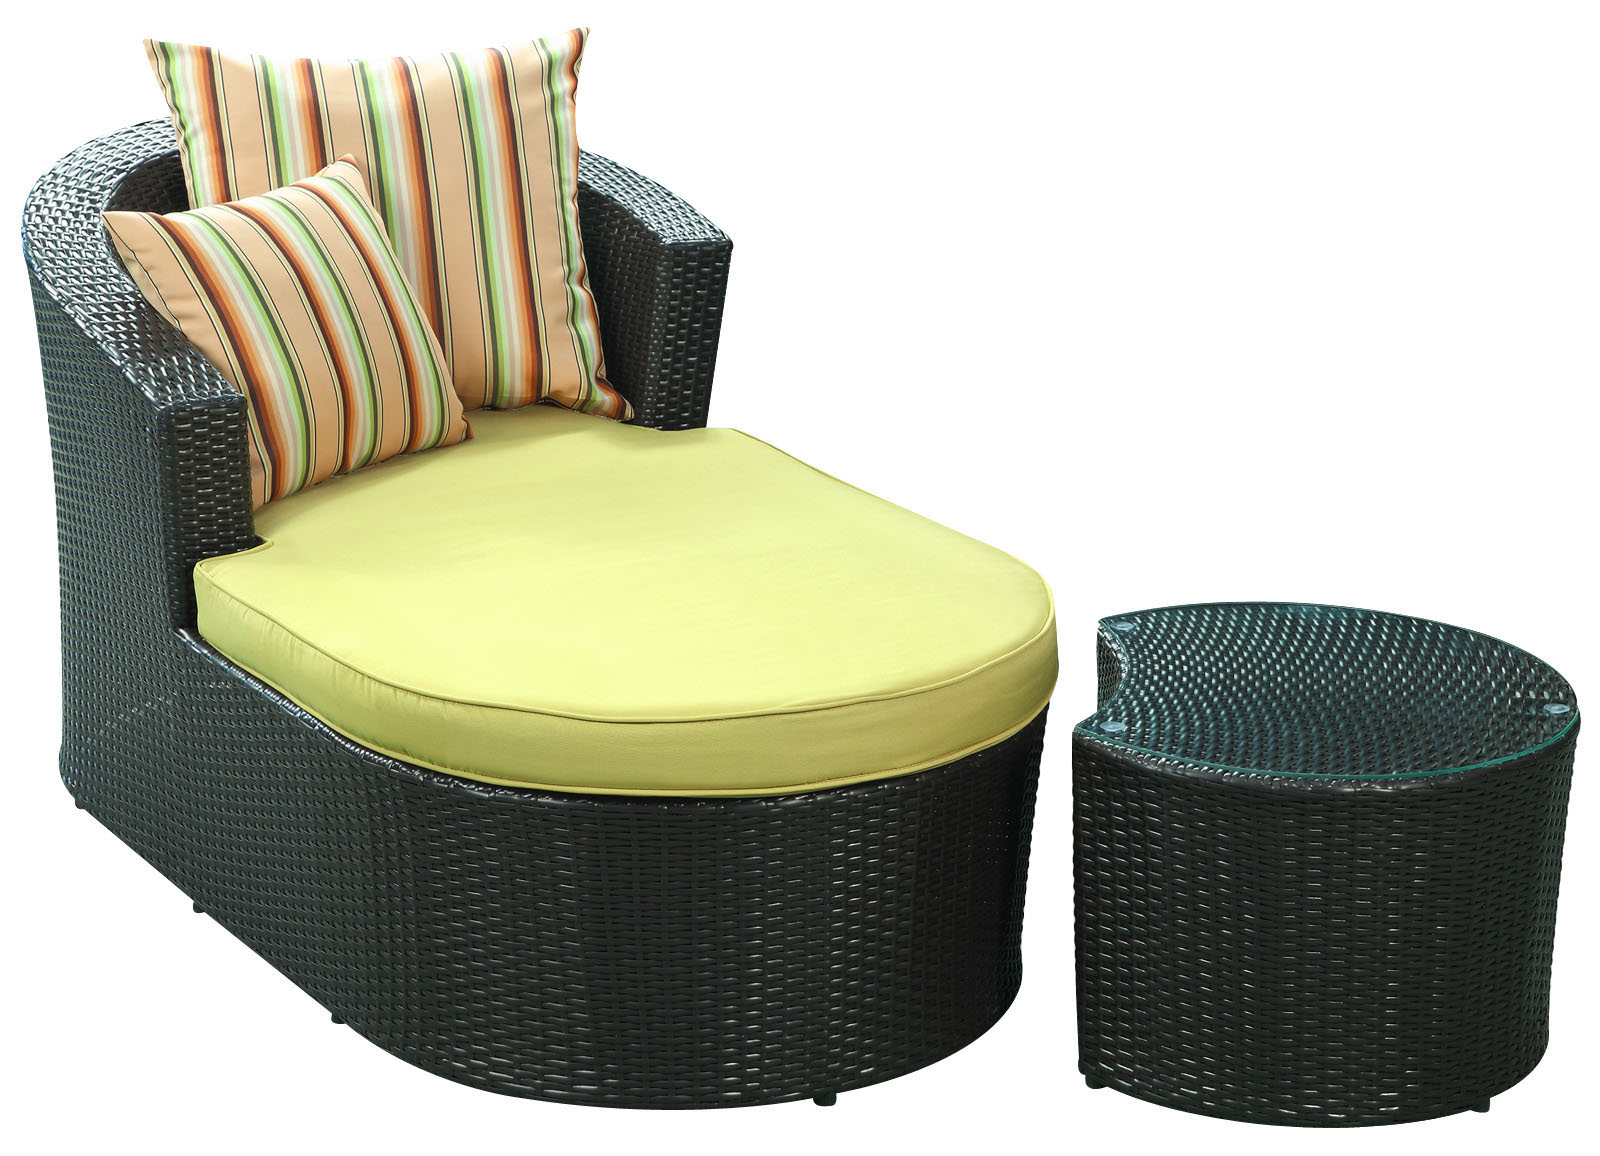 Outdoor furniture sets city living design city living design for Chaise interiors inc